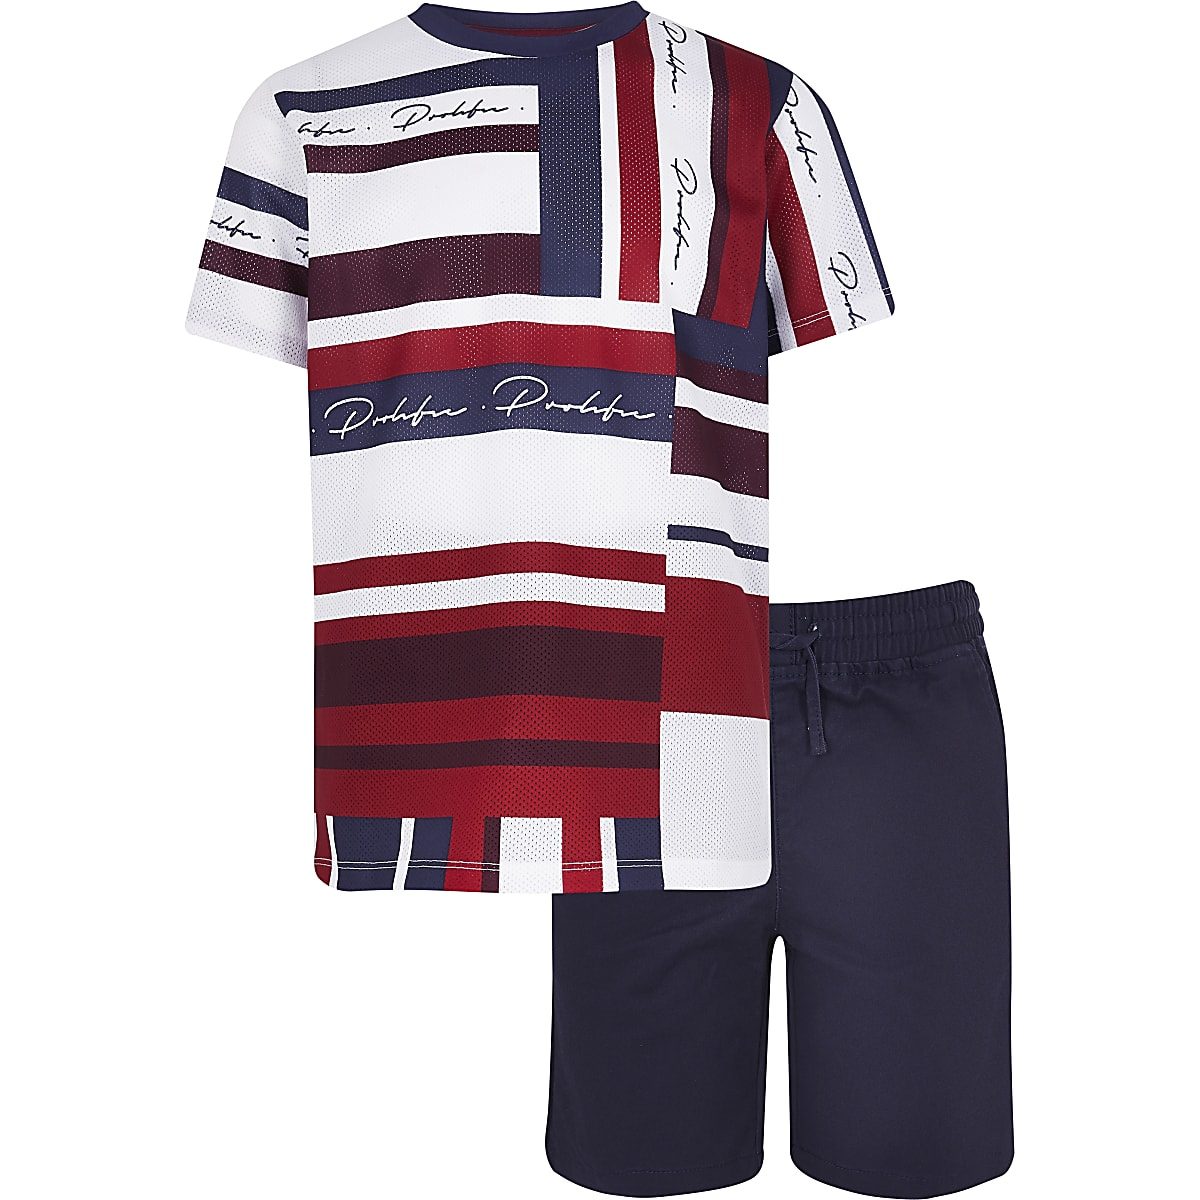 Boys red Abrasct tee and short set